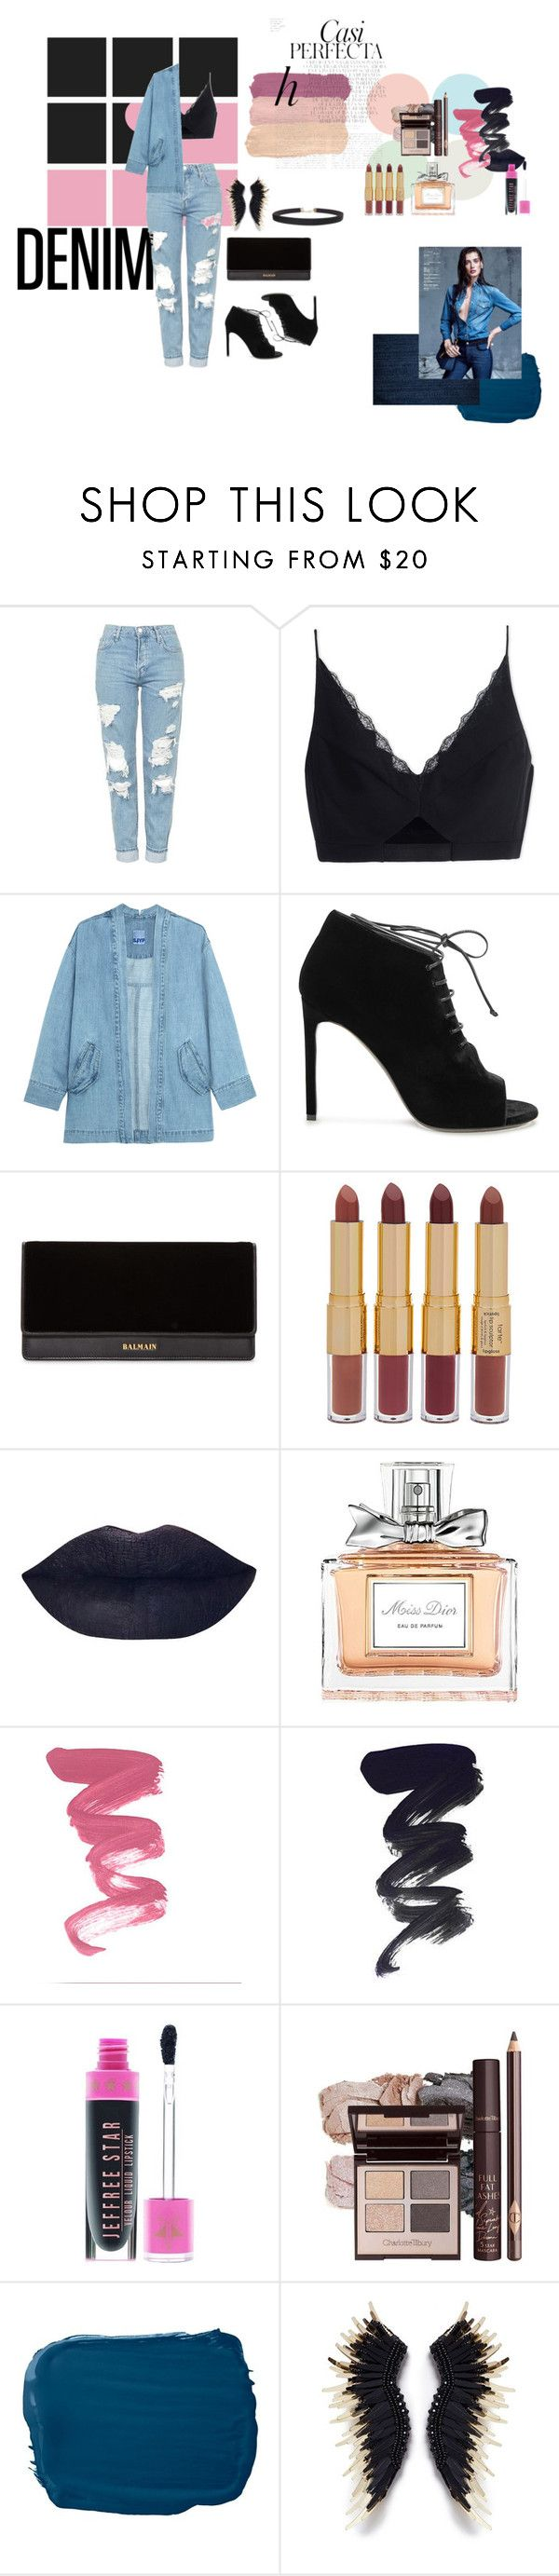 """""""Untitled #10"""" by amirahsyanti ❤ liked on Polyvore featuring Topshop, Versace, Steve J & Yoni P, Yves Saint Laurent, Balmain, tarte, Christian Dior, Jeffree Star, Ralph Lauren and Whiteley"""